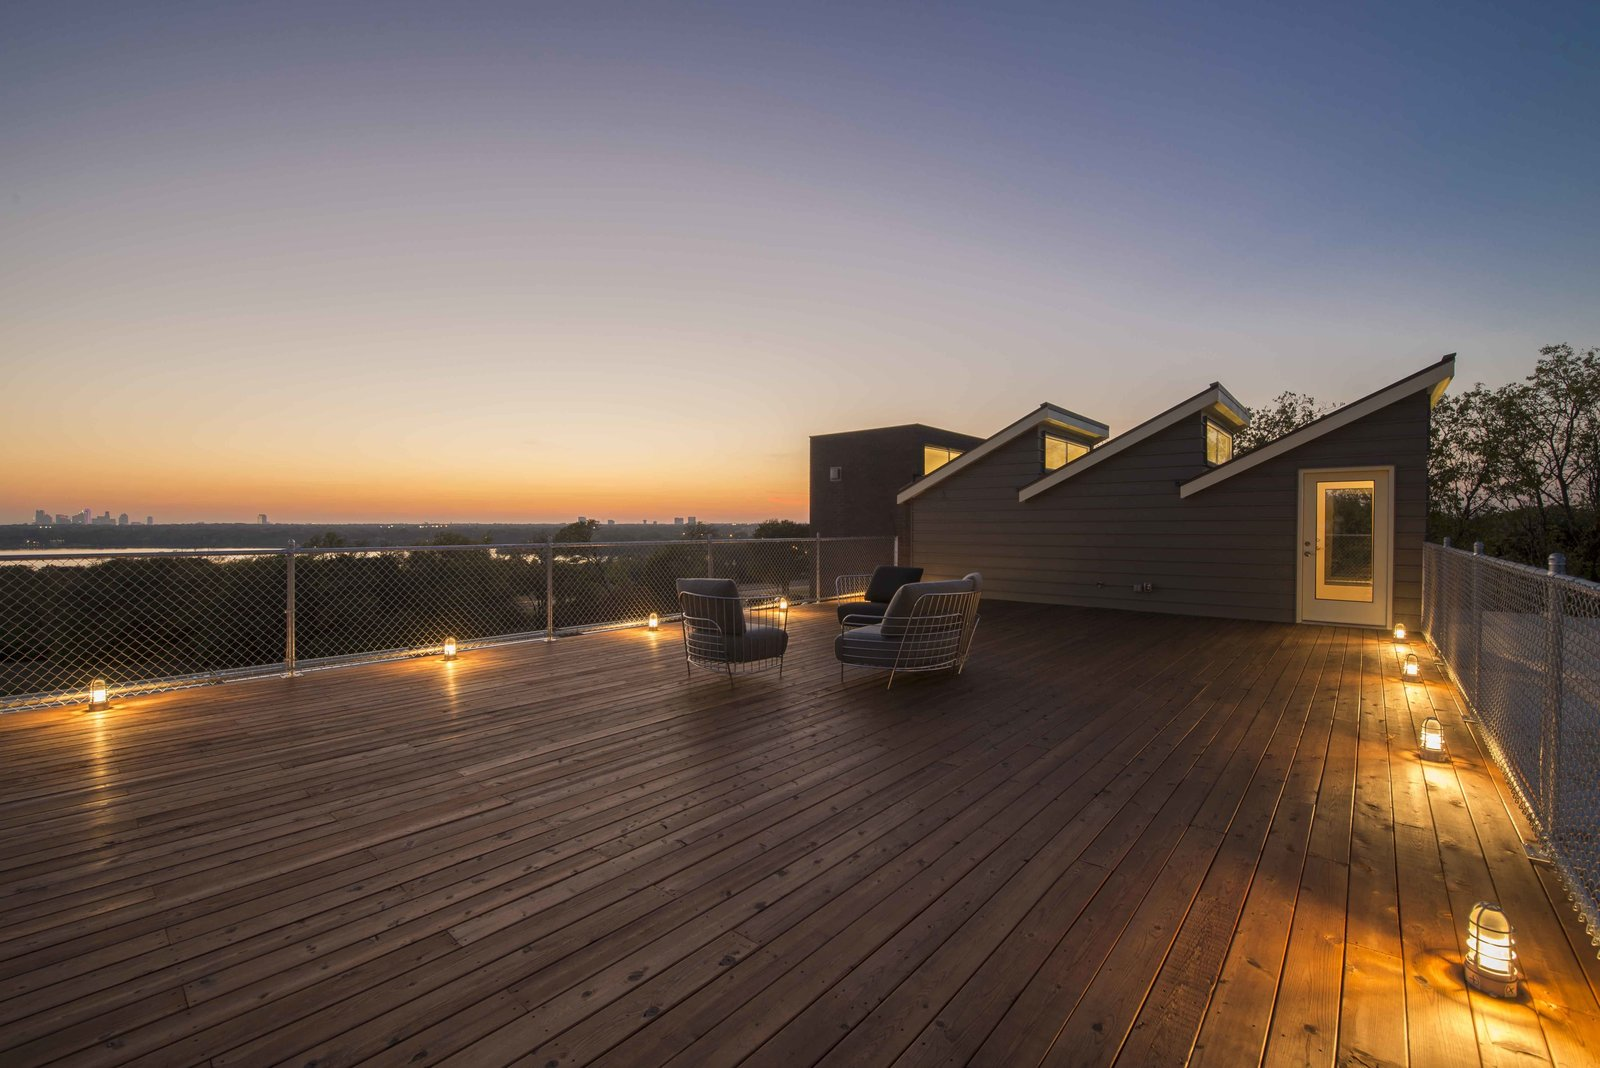 A 1400-square-foot roof deck offers panoramic views, overlooking White Rock Lake with one of the highest elevations in the city.  This House Was Built Out of 14 Shipping Containers by Esha Chhabra